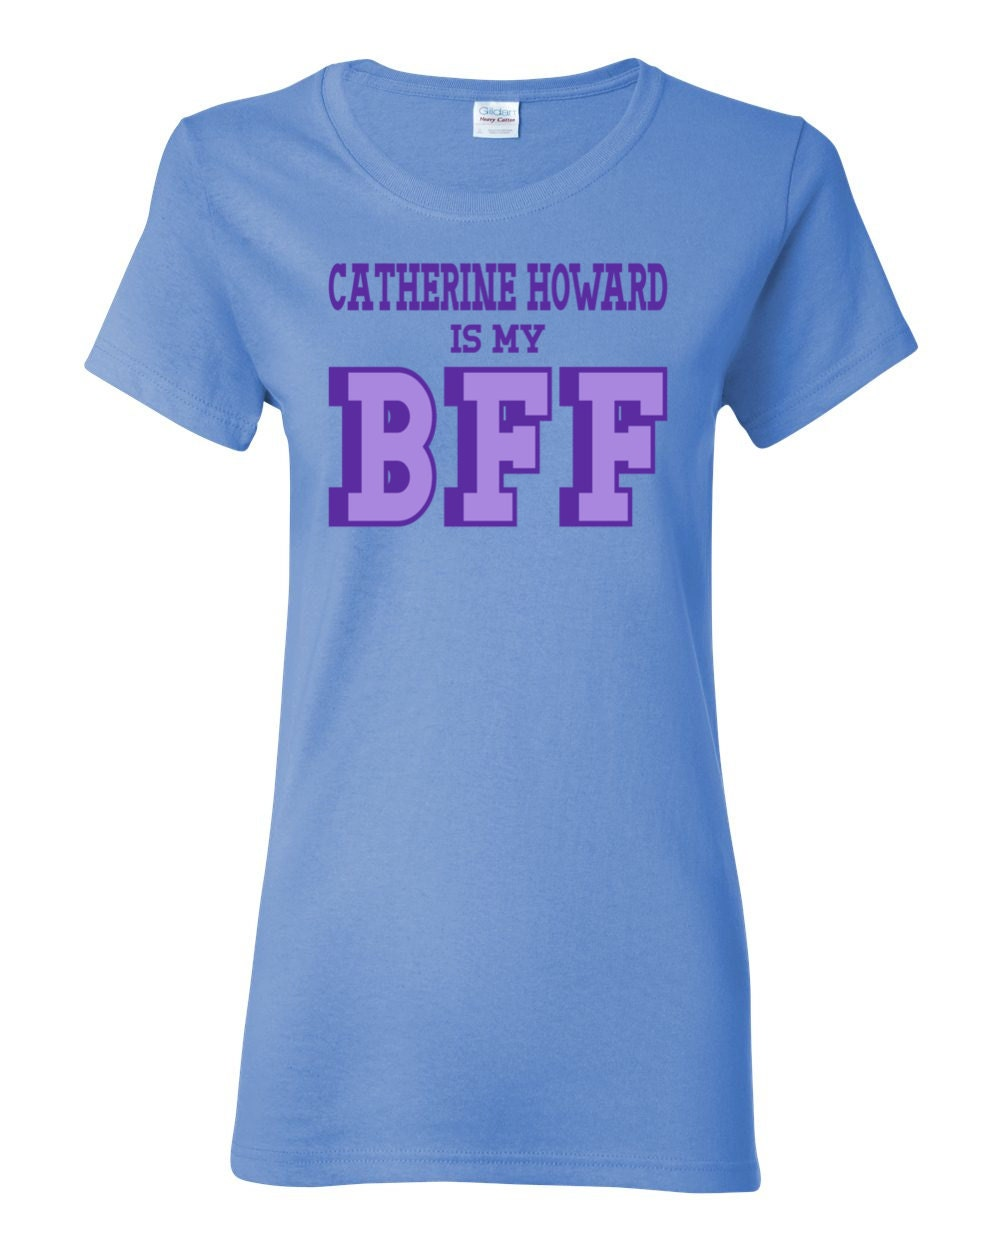 Great Women of History - Catherine Howard is my BFF Womens History T-shirt